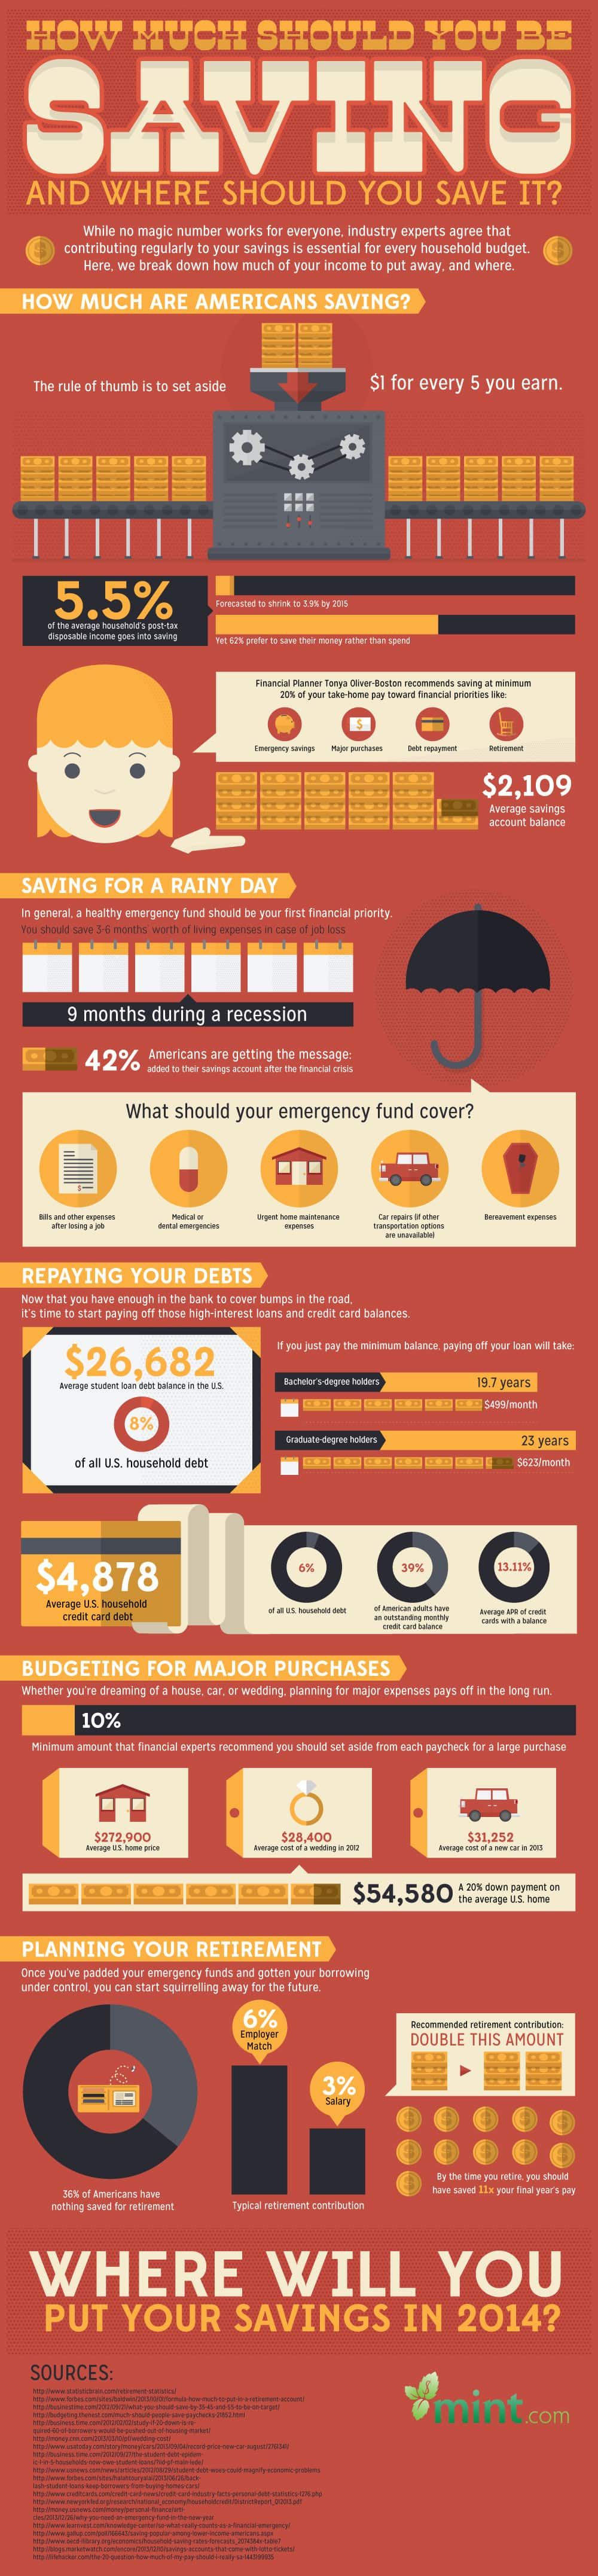 How Much Should You Be Saving? :: Mint.com/blog